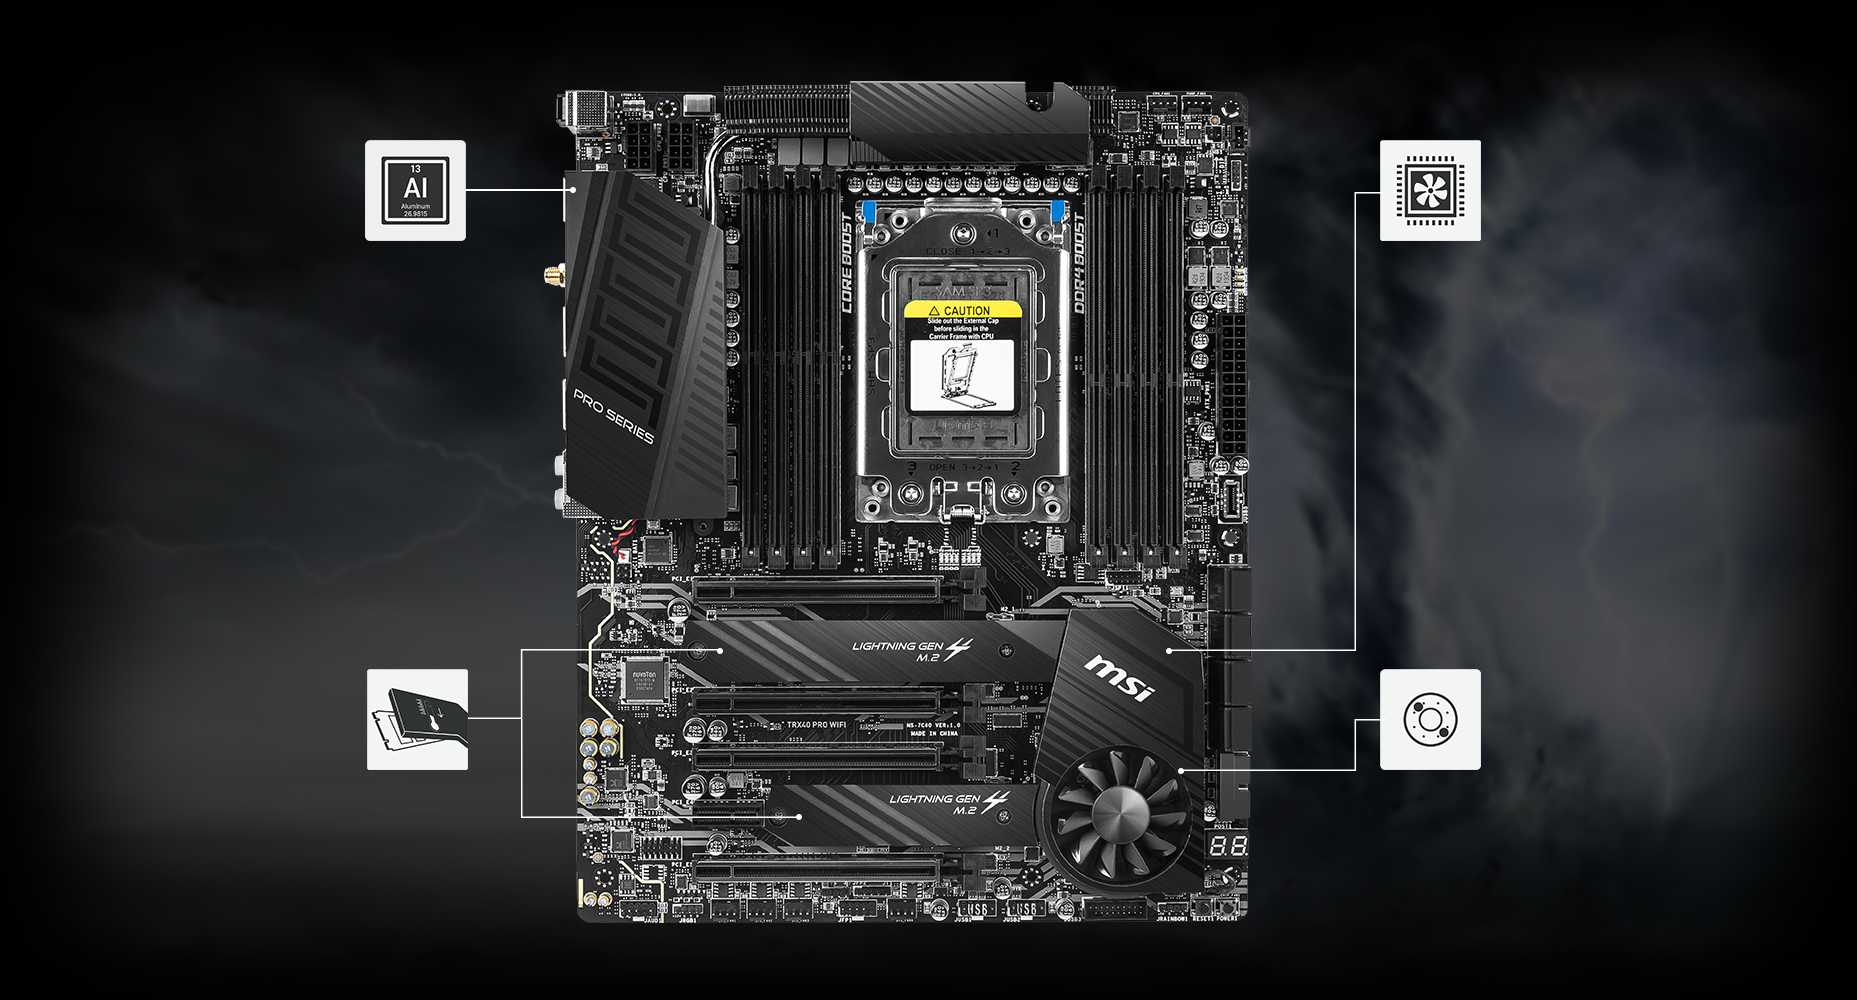 TRX40 PRO wifimotherboard and a video card